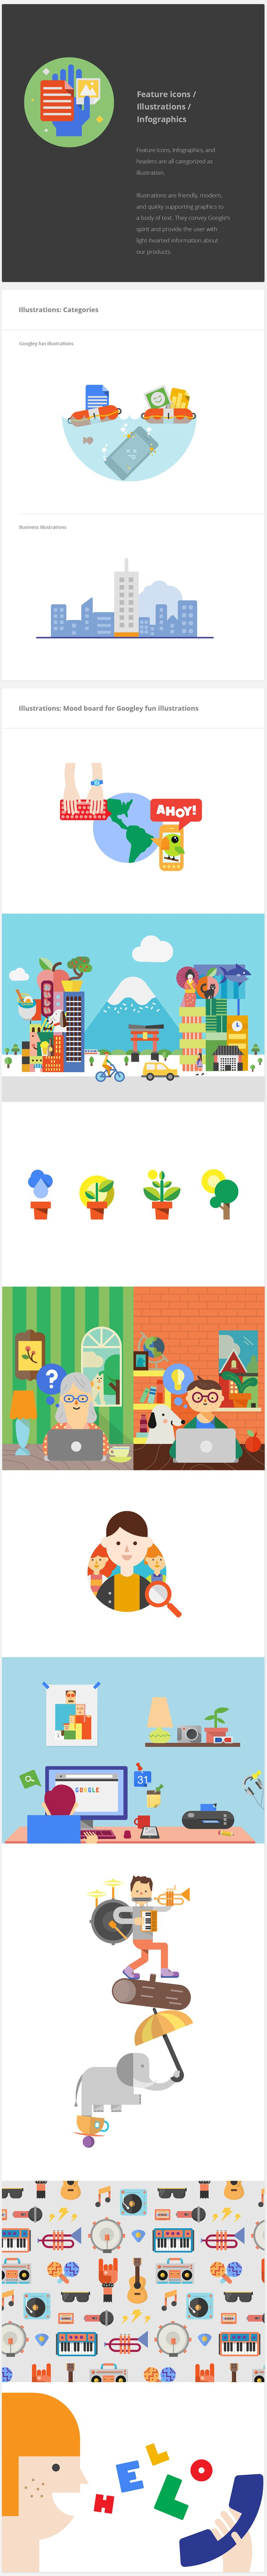 Google Visual Assets Guidelines - Part 2 on Behance